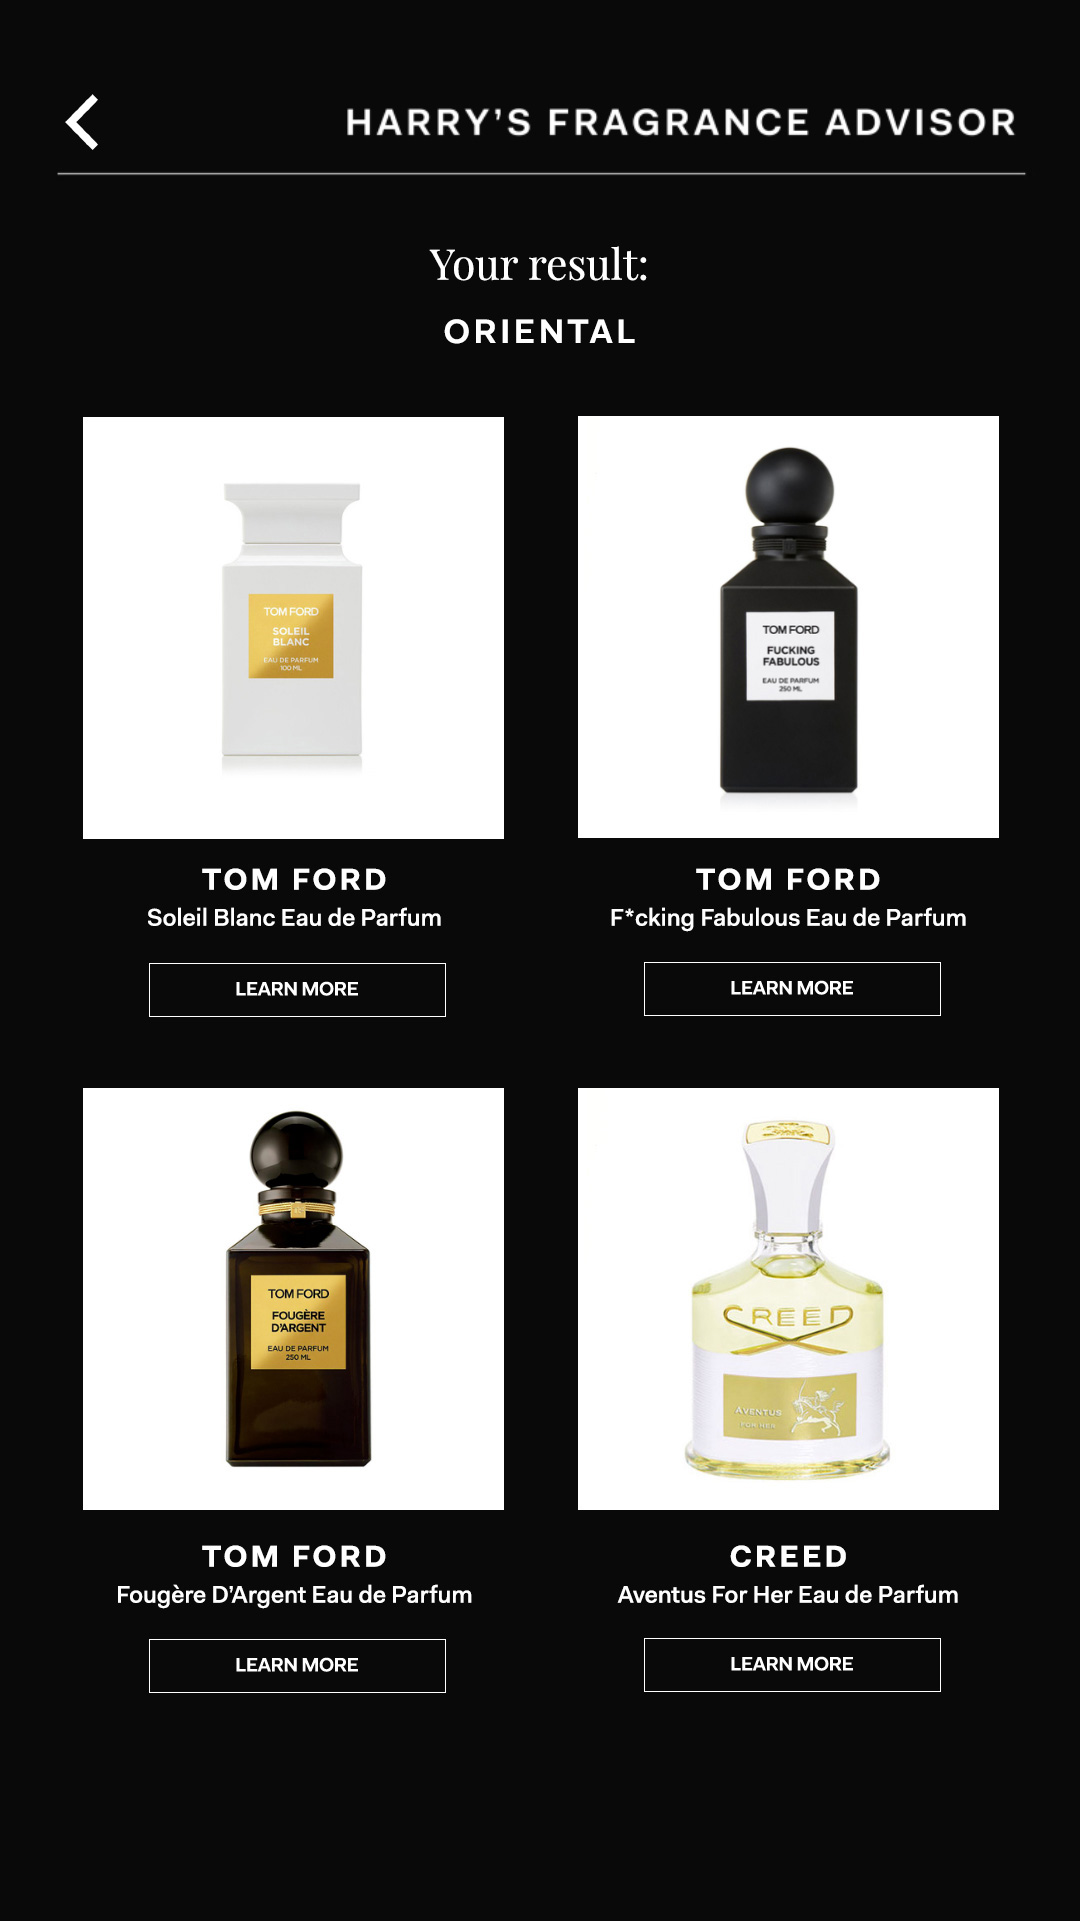 harrys-fragrance-advisor-oriental